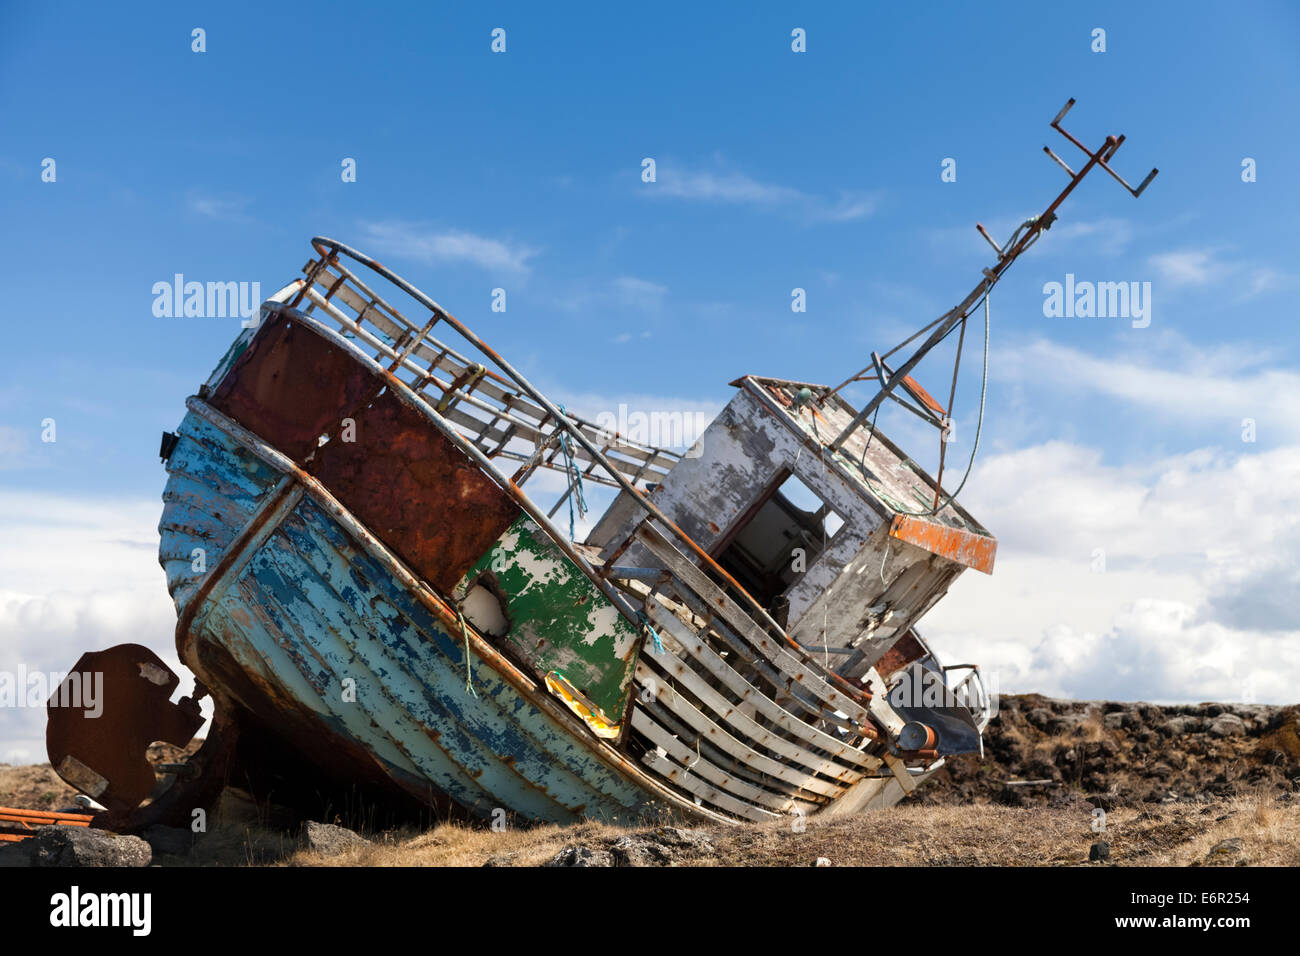 beached-and-deserted-old-fishing-boat-on